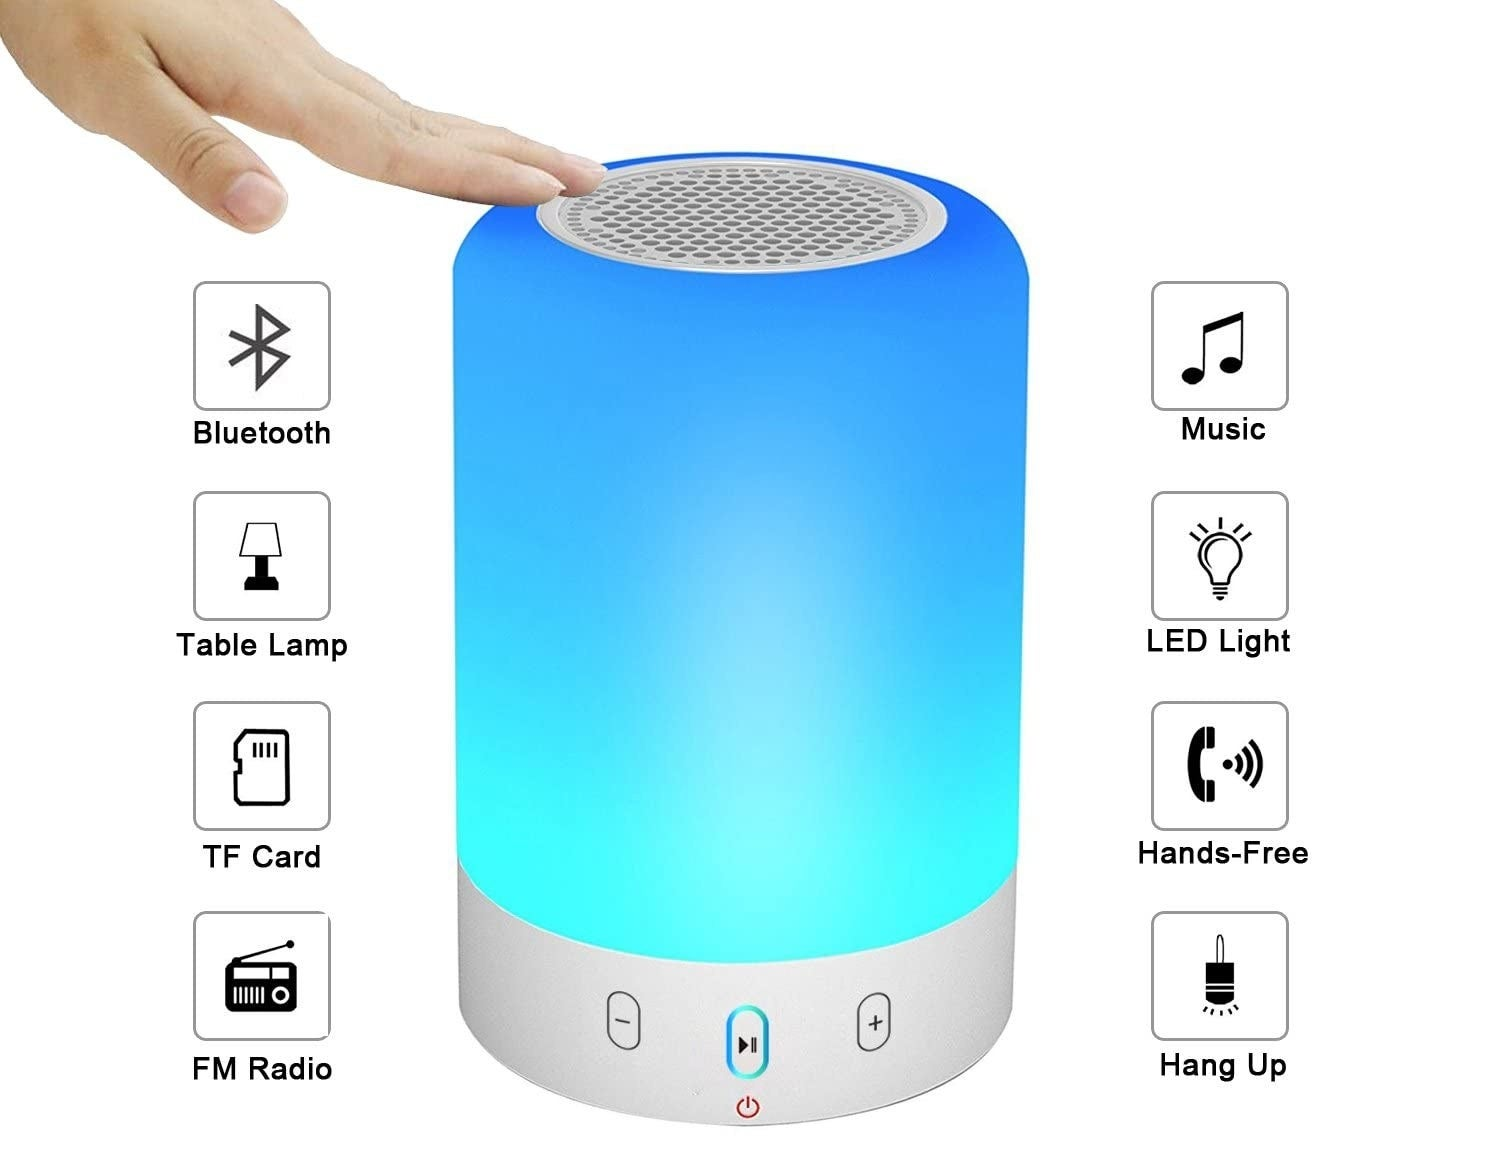 """A hand on the lamp lit up in blue. Graphics say """"Bluetooth, table lamp, tf card, FM radio, music, LED light, hands-free, hang up"""""""